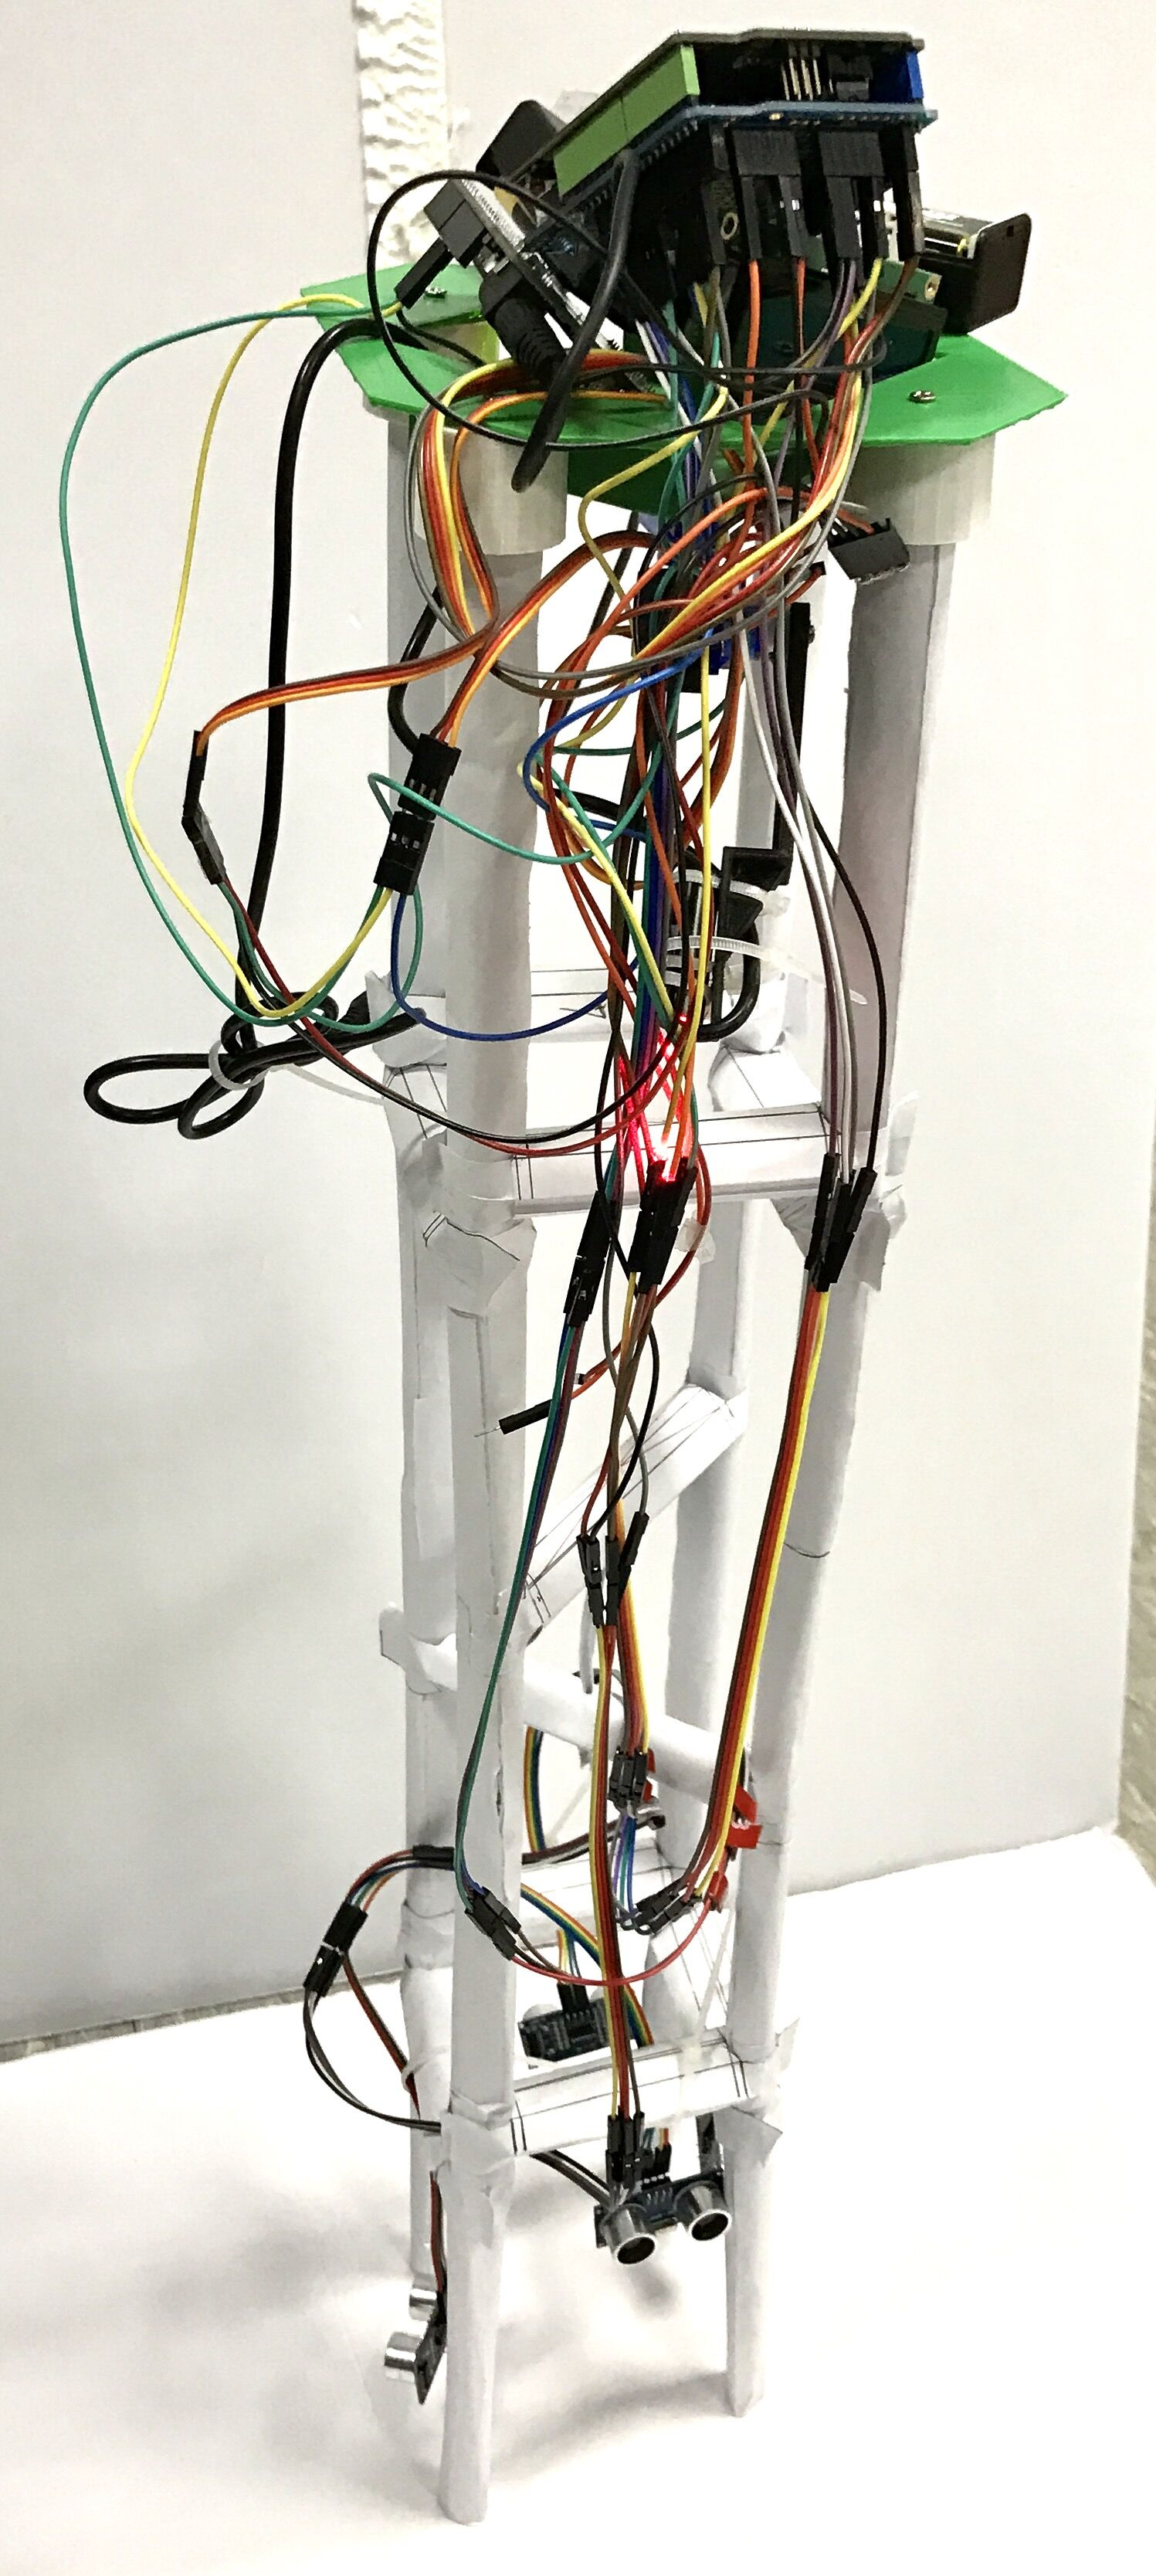 Picture of Final System View & Troubleshooting